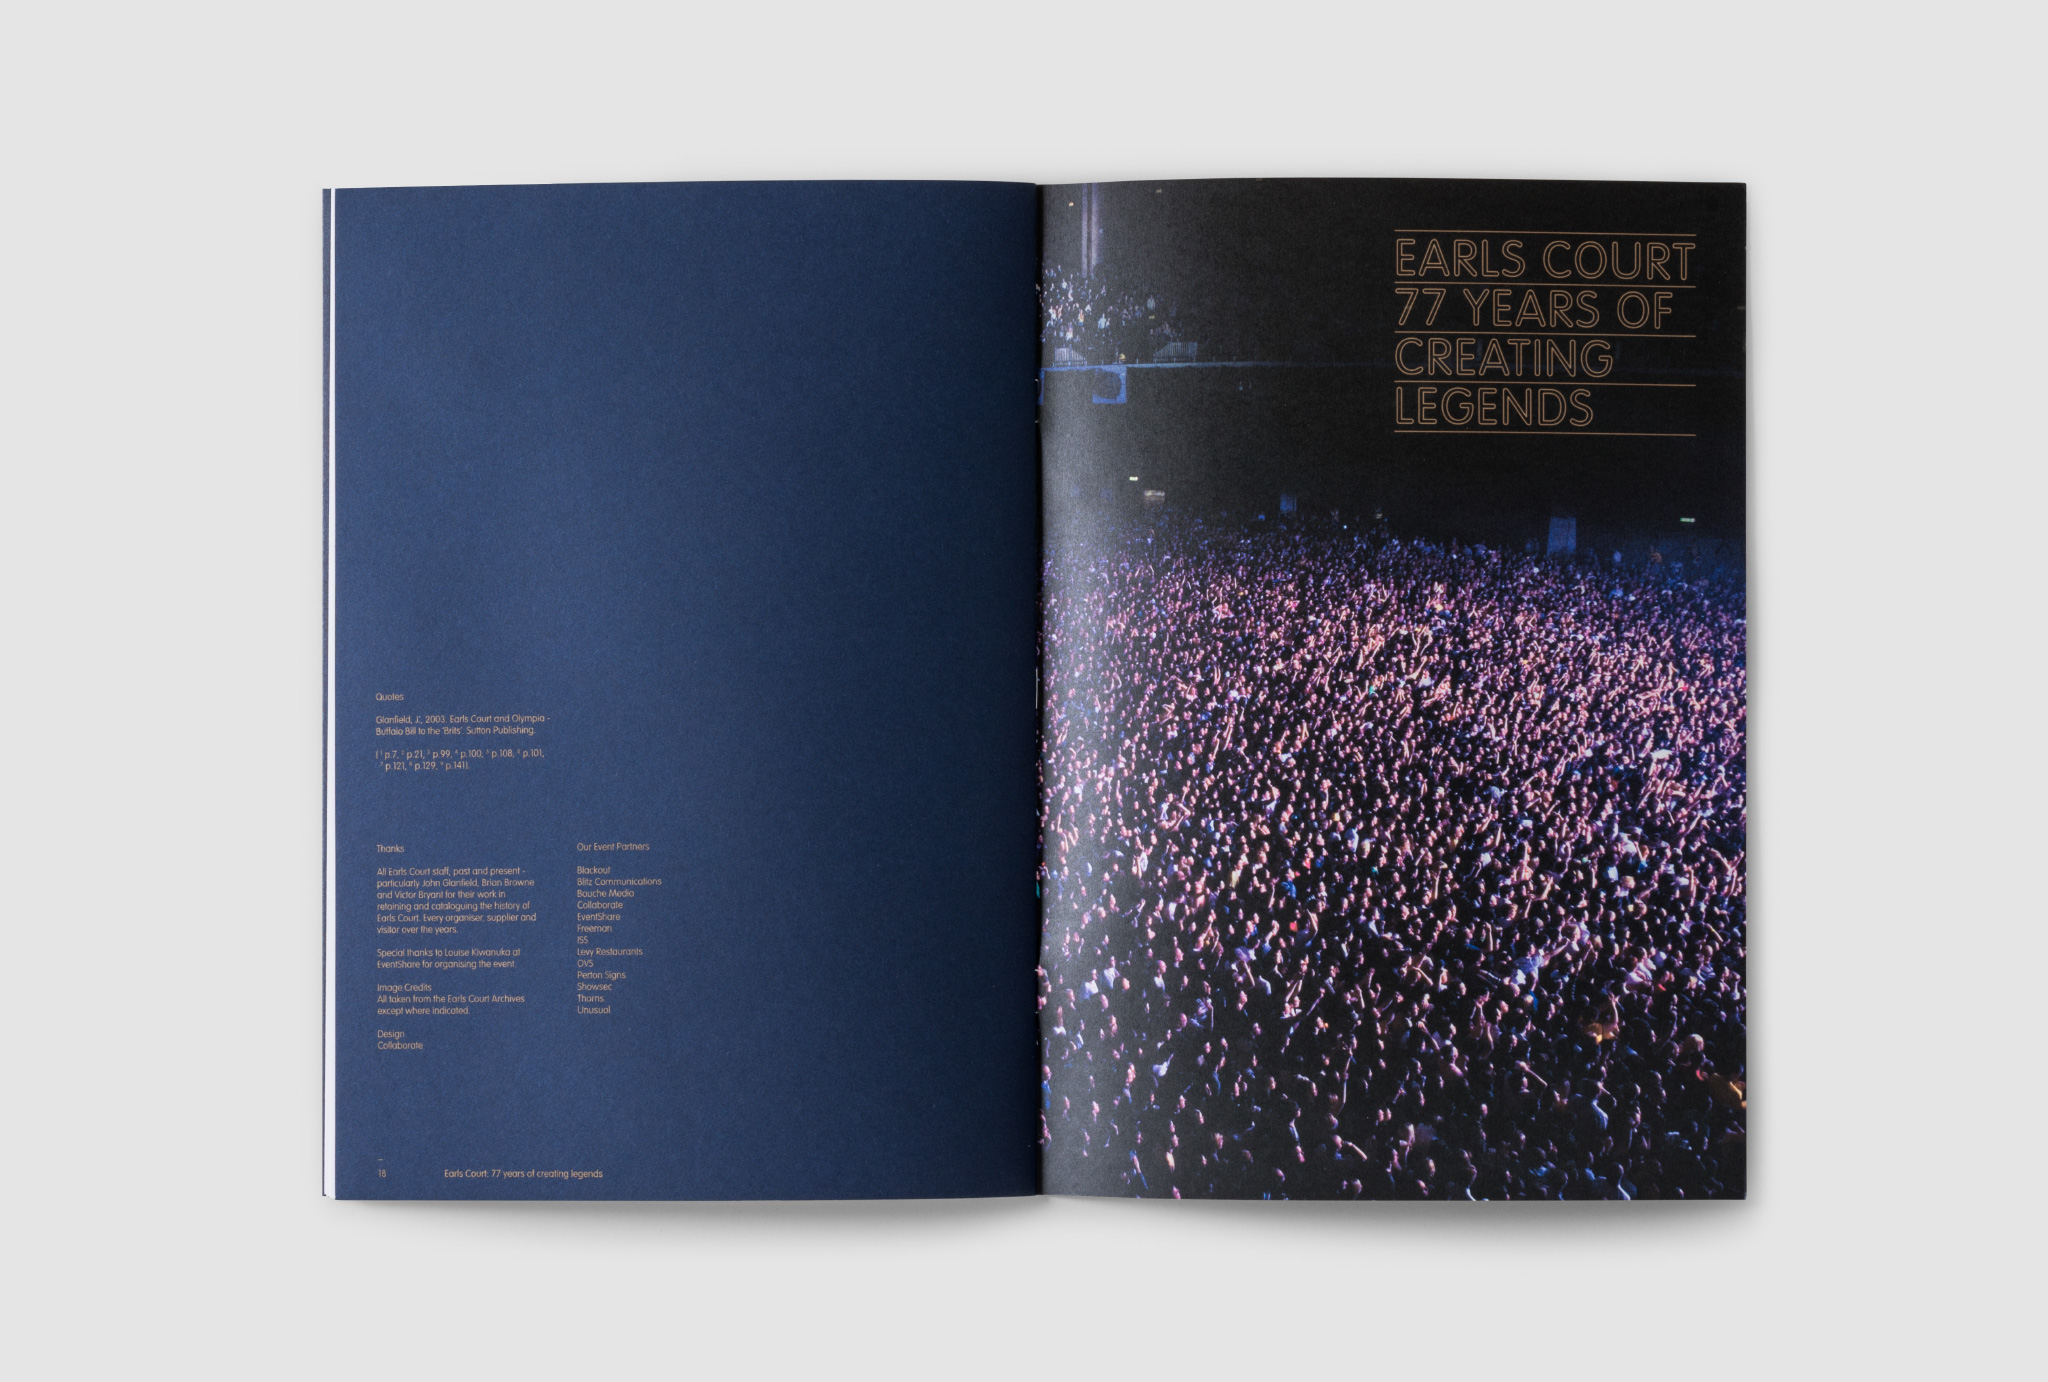 catalogue design in dark blue and a photograph of the crowd on the other page